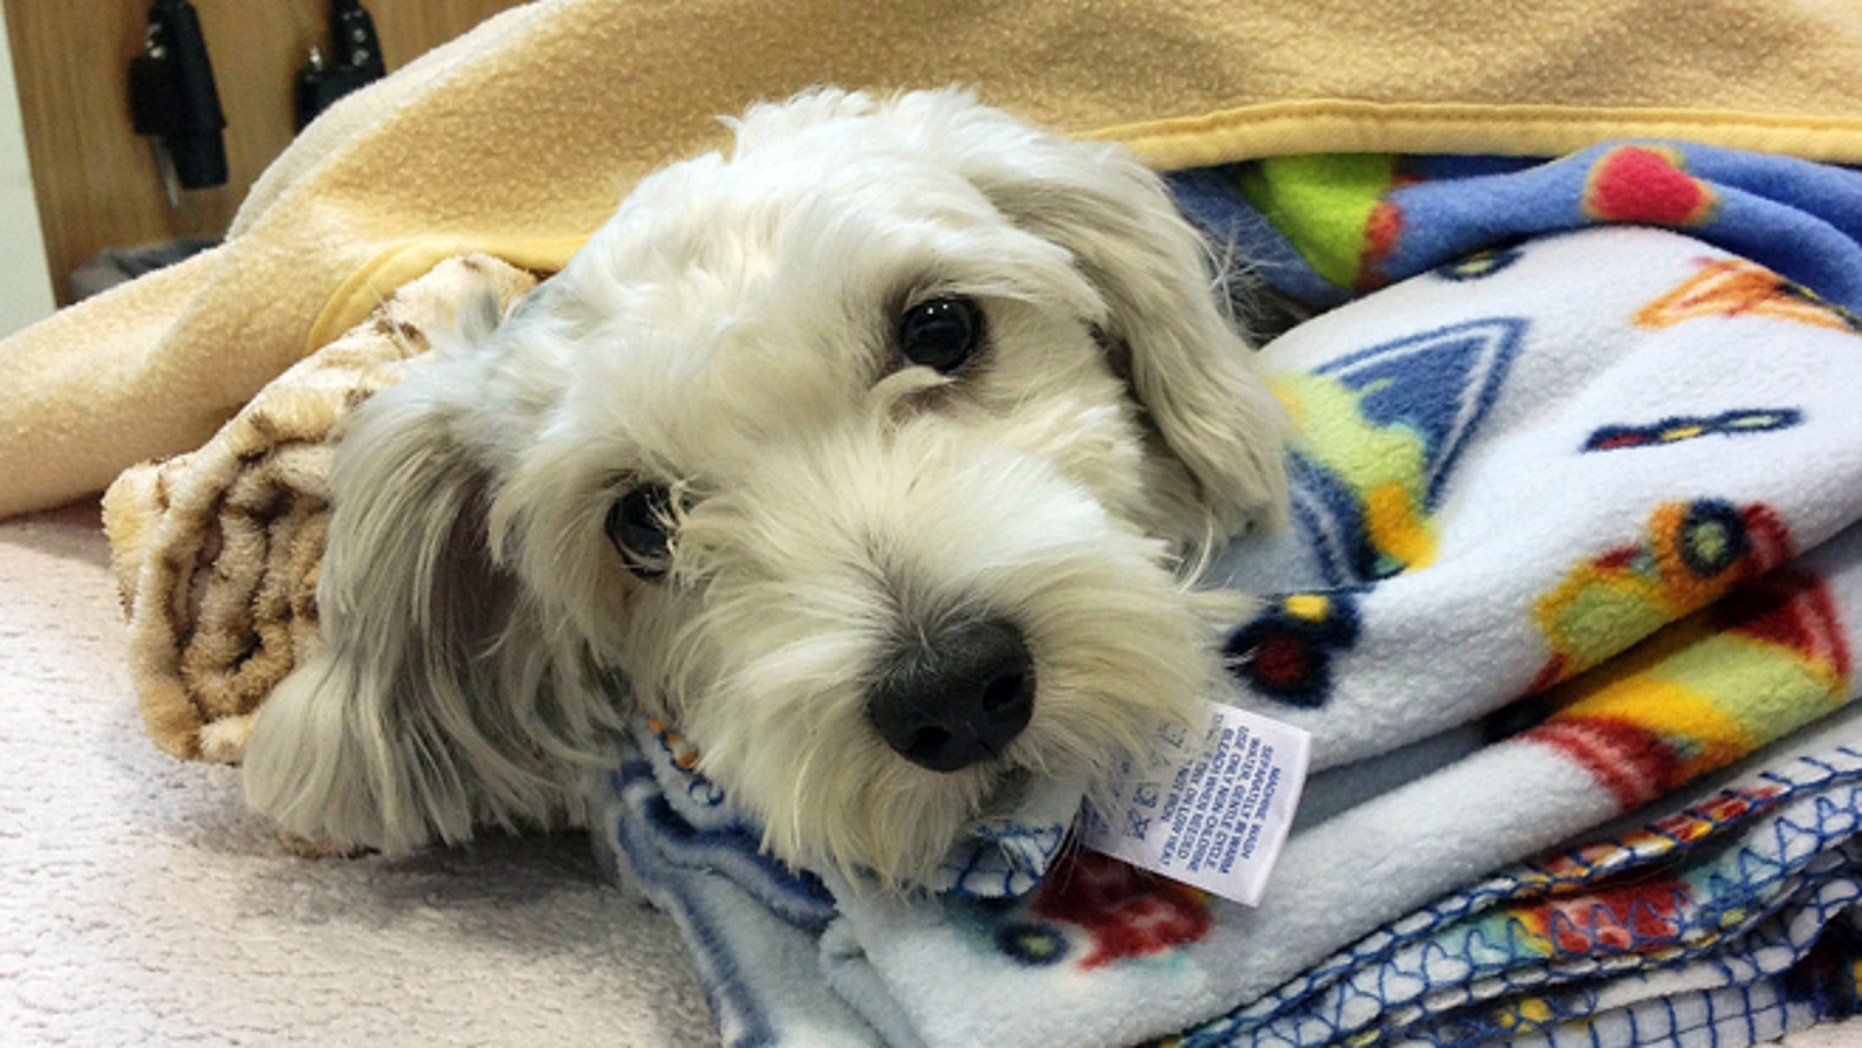 Sept. 18, 2014: This photo provided by ACCESS Specialty Animal Hospitals shows Gordo, a 1- to 2-year-old Maltese mix that was struck by a van during a police chase Wednesday night, being cared for at City Of Angels Veterinary Specialty Center in Culver City, Calif.